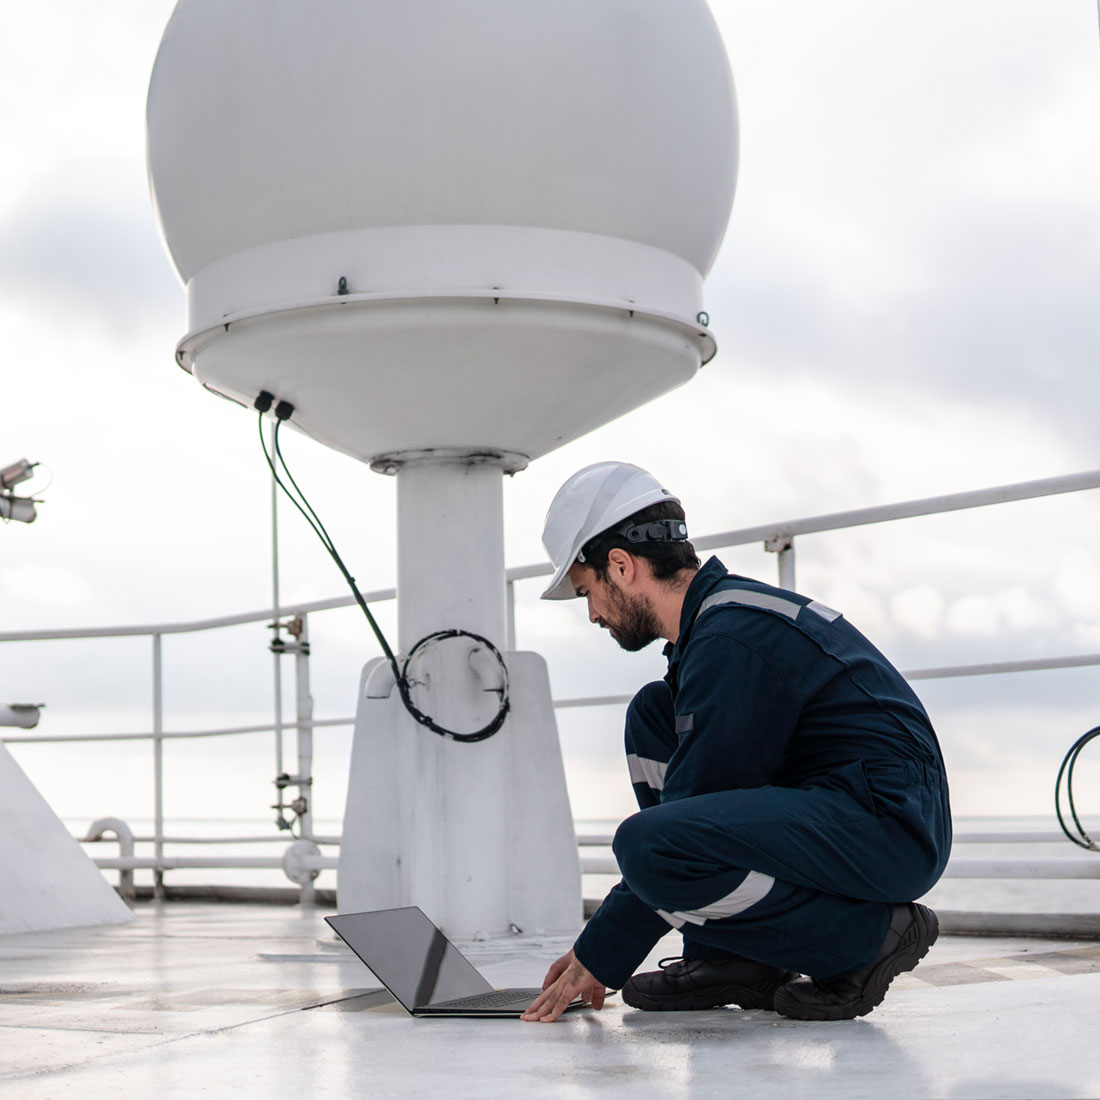 Azimuth Technologies marine service technician near vsat terminal on deck of ship he is working